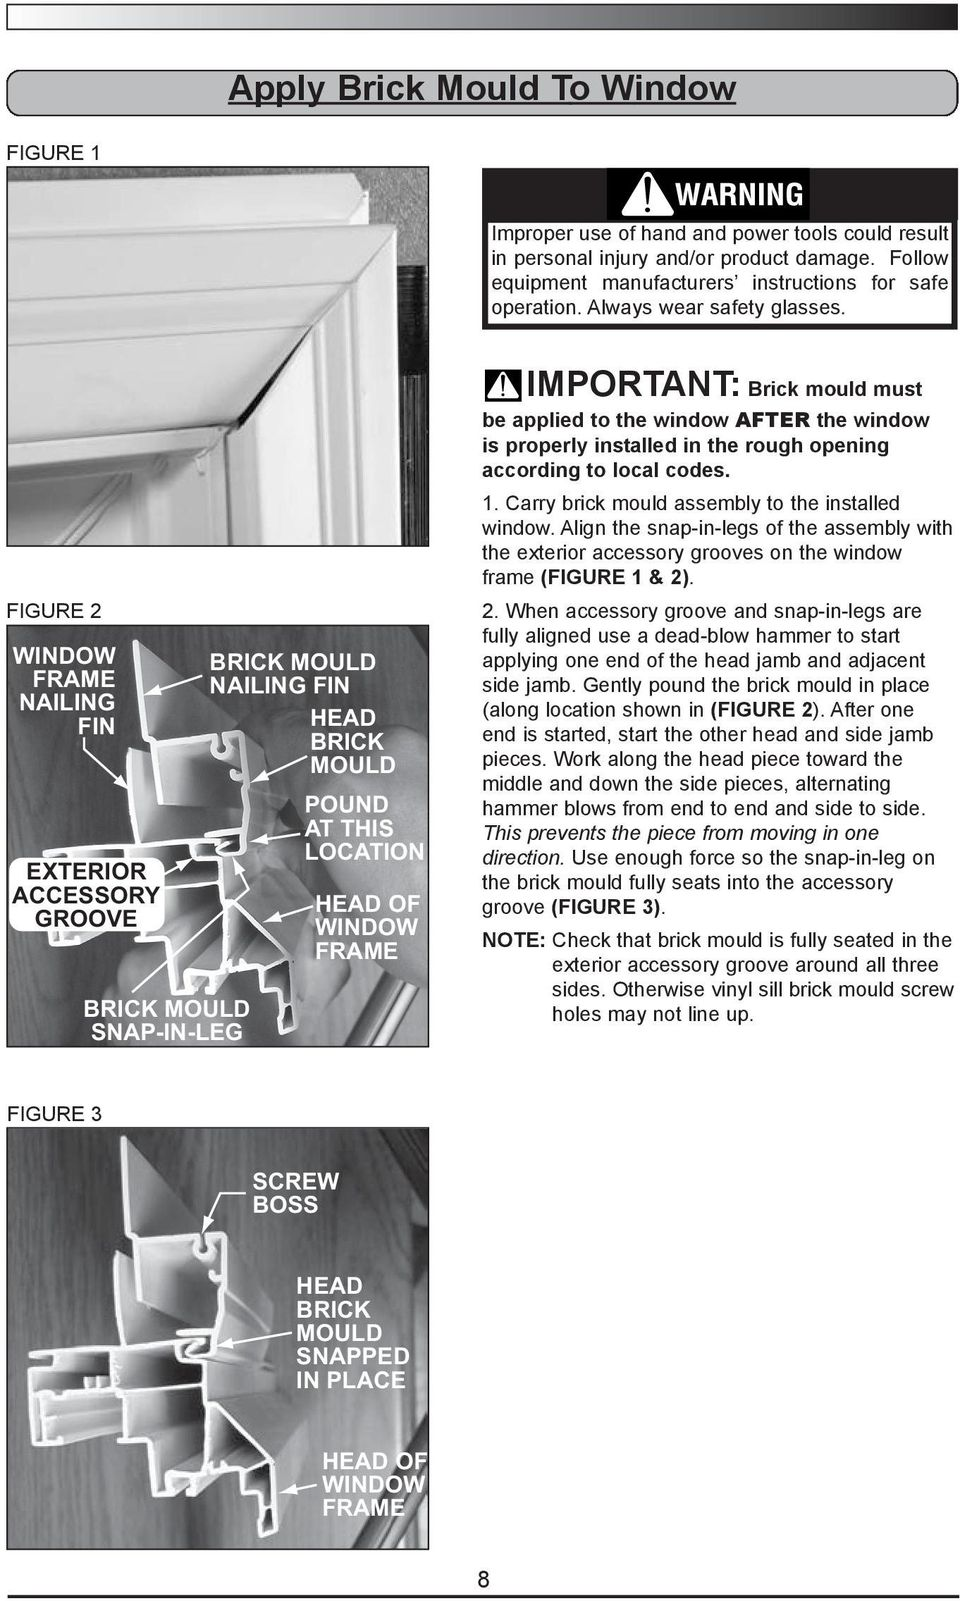 FIGURE 2 WINDOW FRAME NAILING FIN EXTERIOR ACCESSORY GROOVE SNAP-IN-LEG NAILING FIN HEAD POUND AT THIS LOCATION HEAD OF WINDOW FRAME IMPORTANT: Brick mould must be applied to the window AFTER the